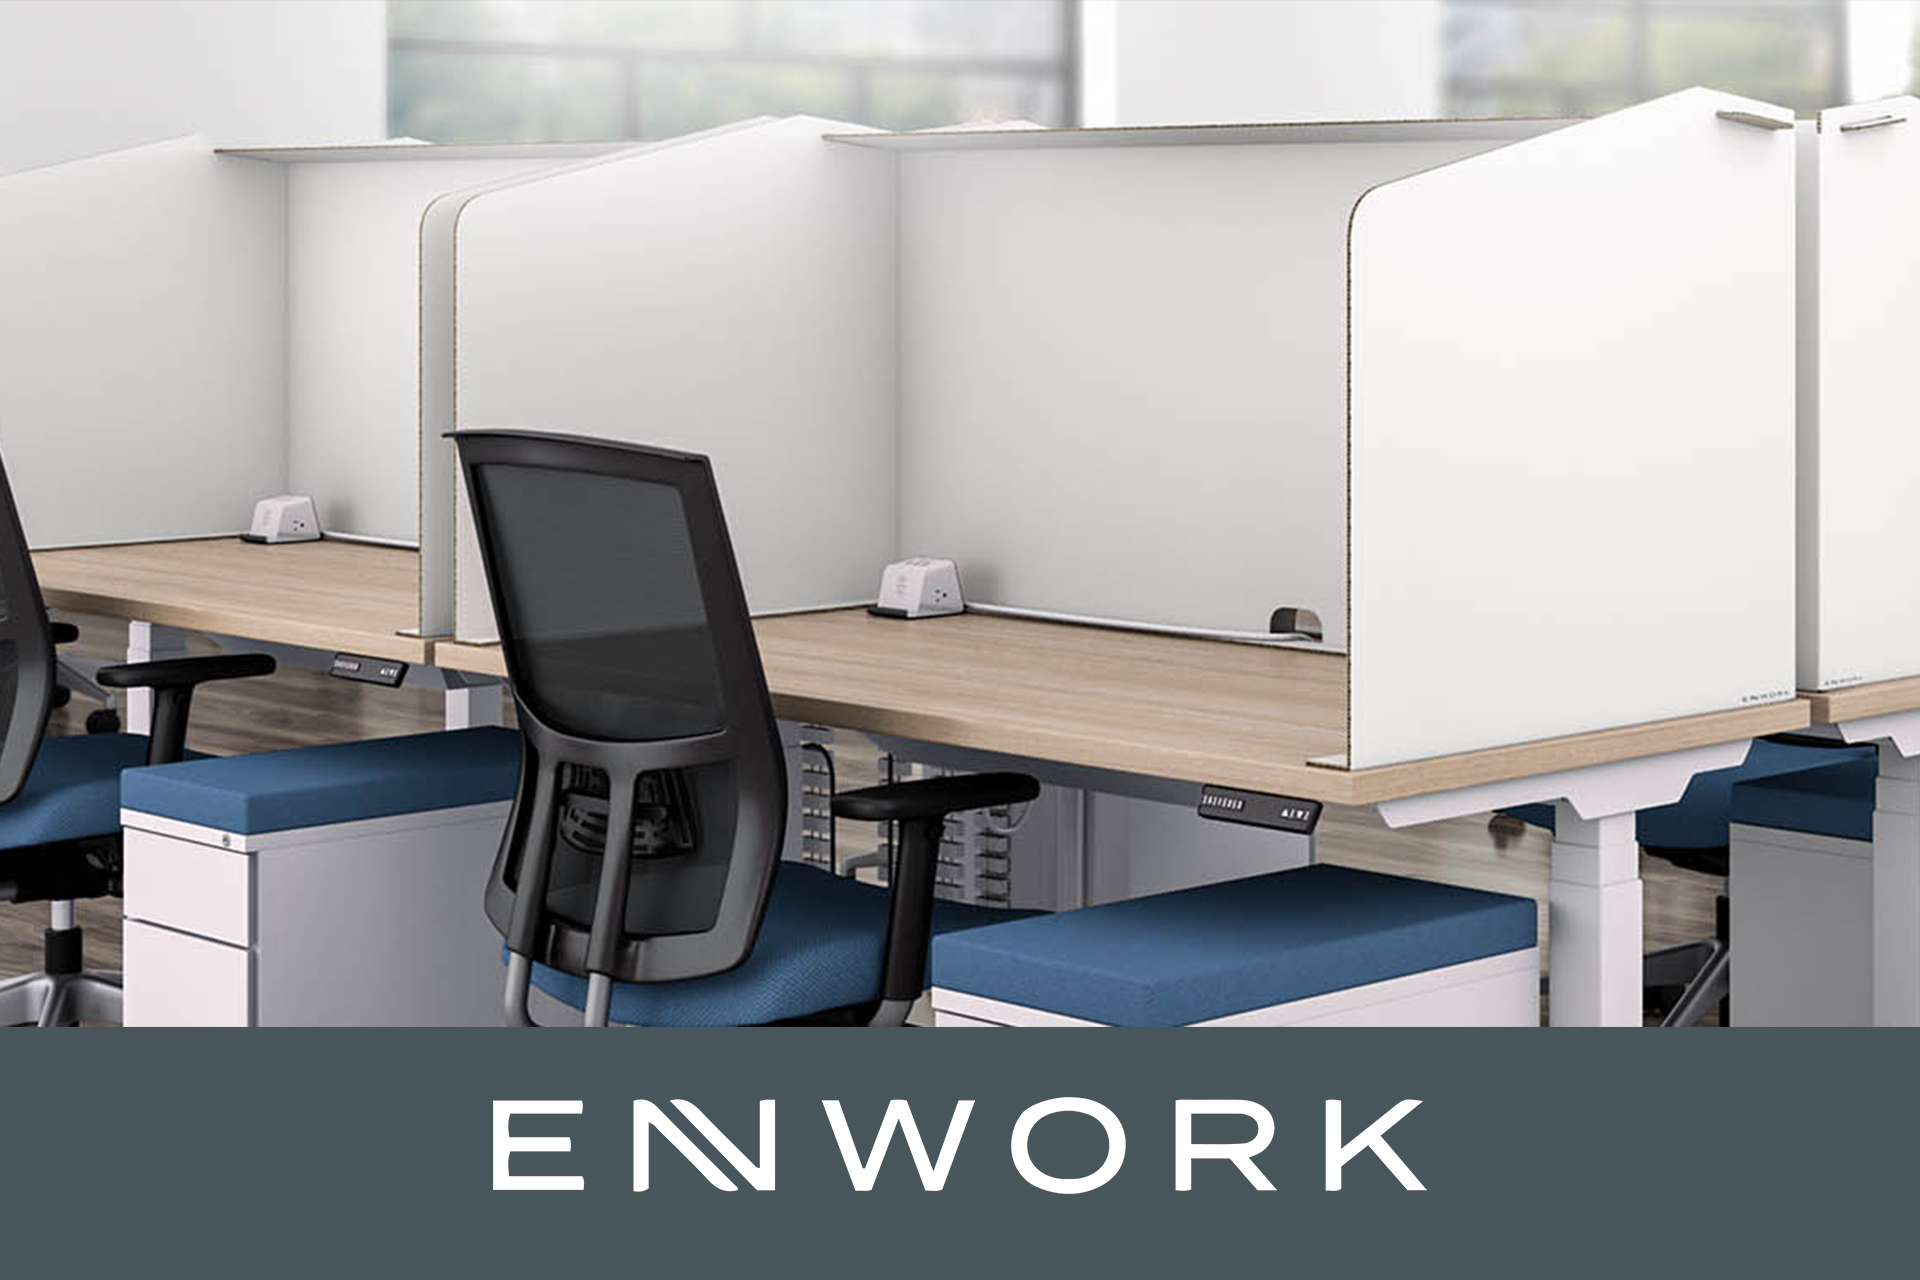 Enwork COVID 19 Rapid Response Harbor Screens Products For Physical Distancing